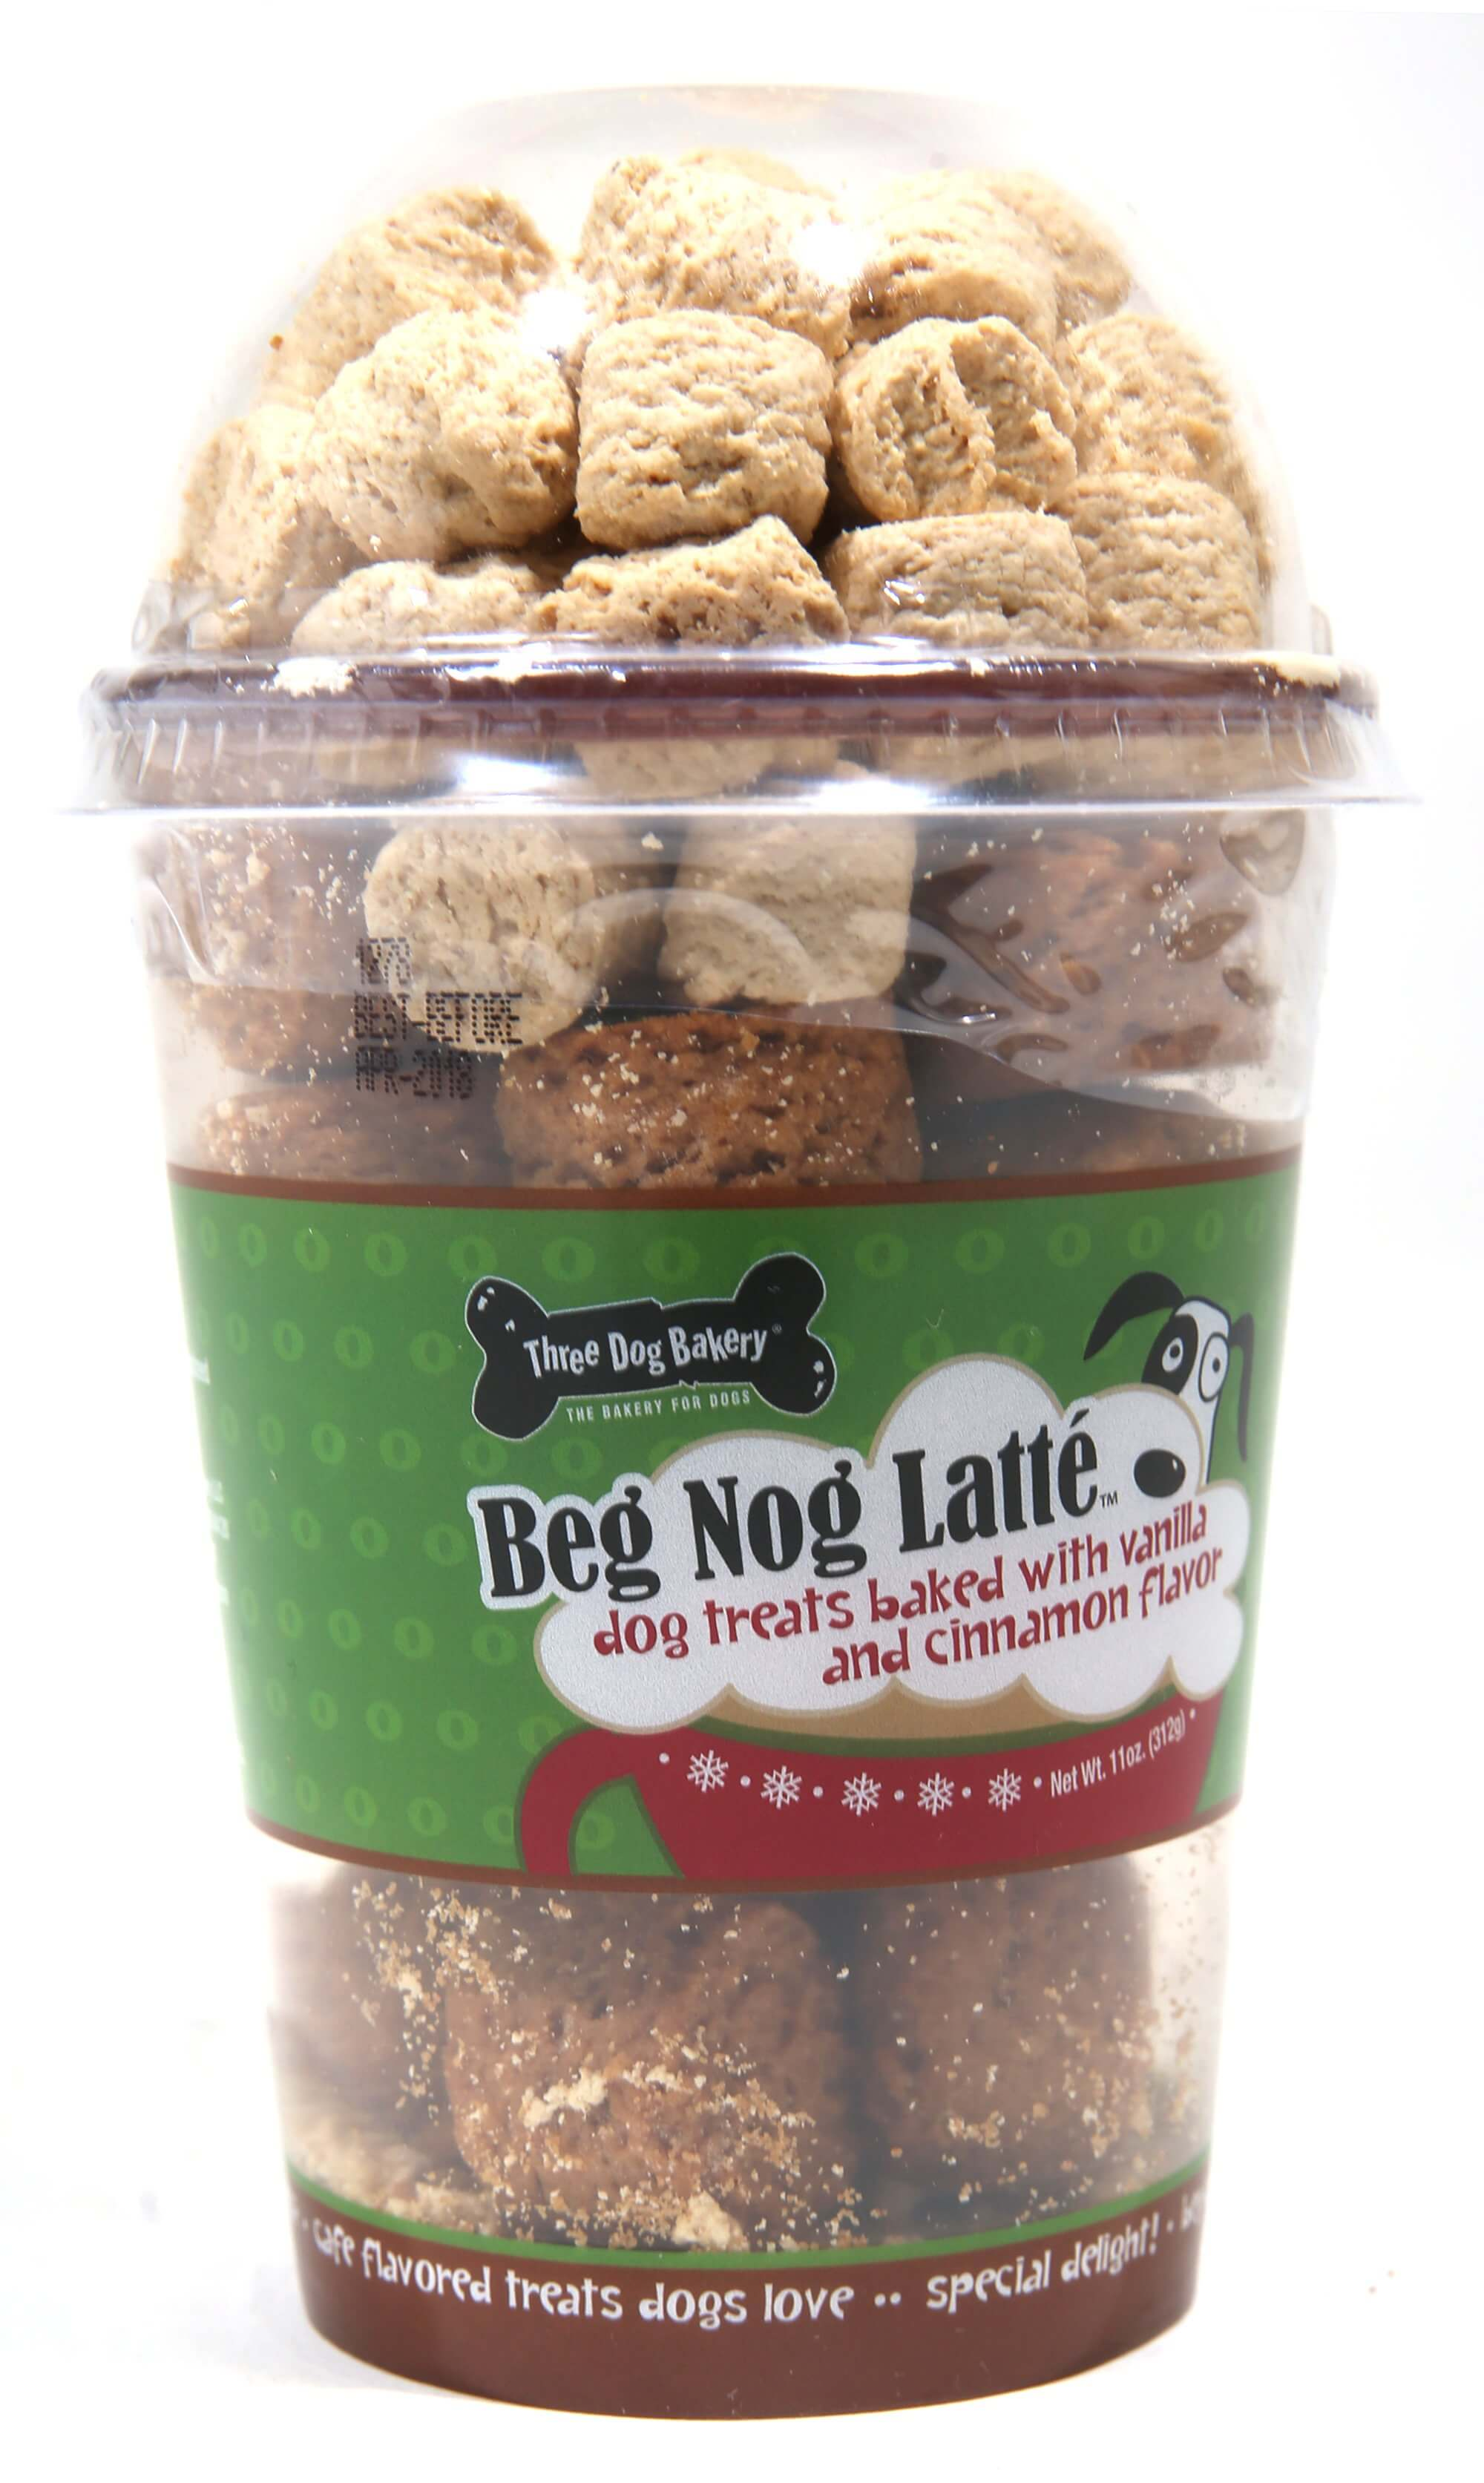 Beg nog latte dog treats